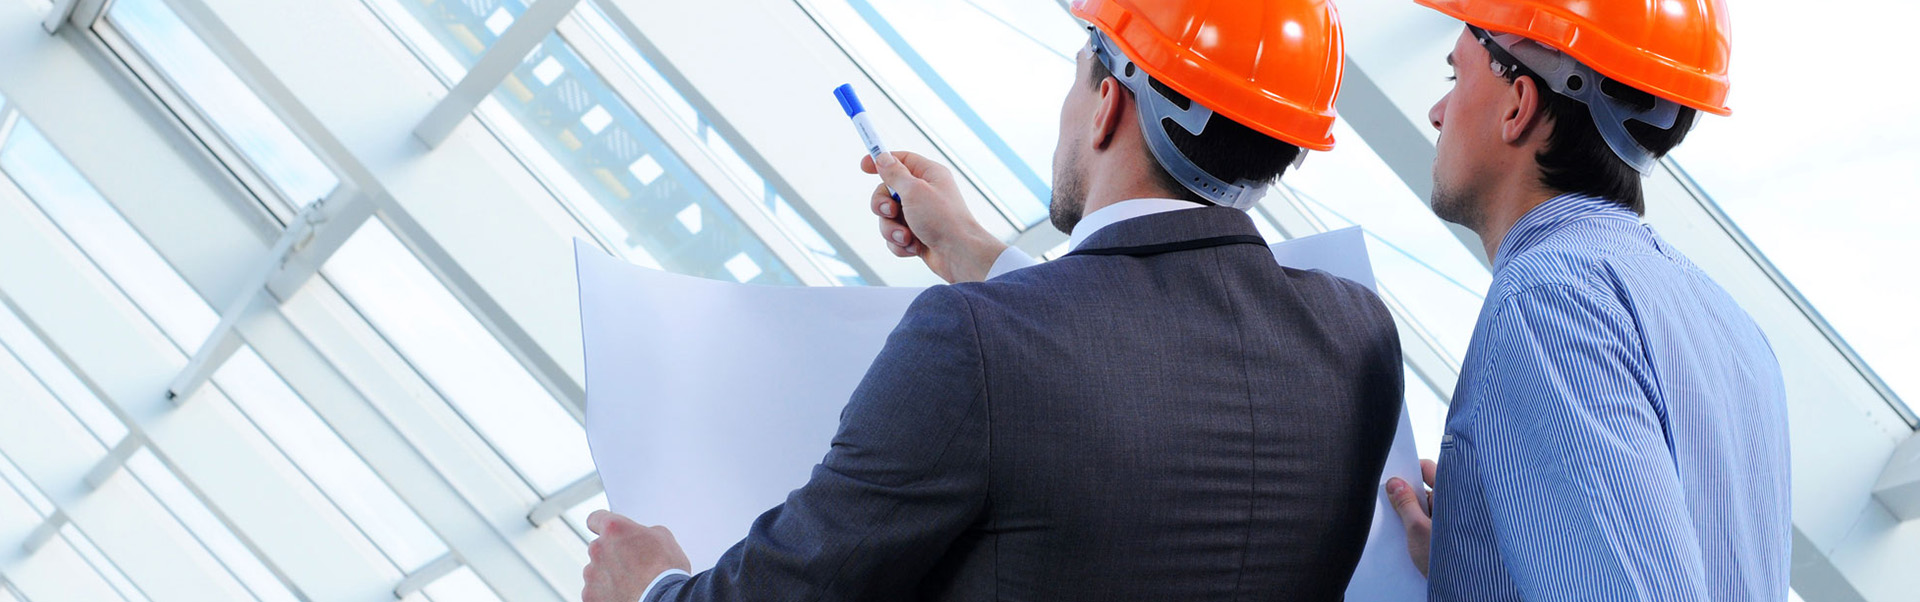 Construction manager checking project details with worker.